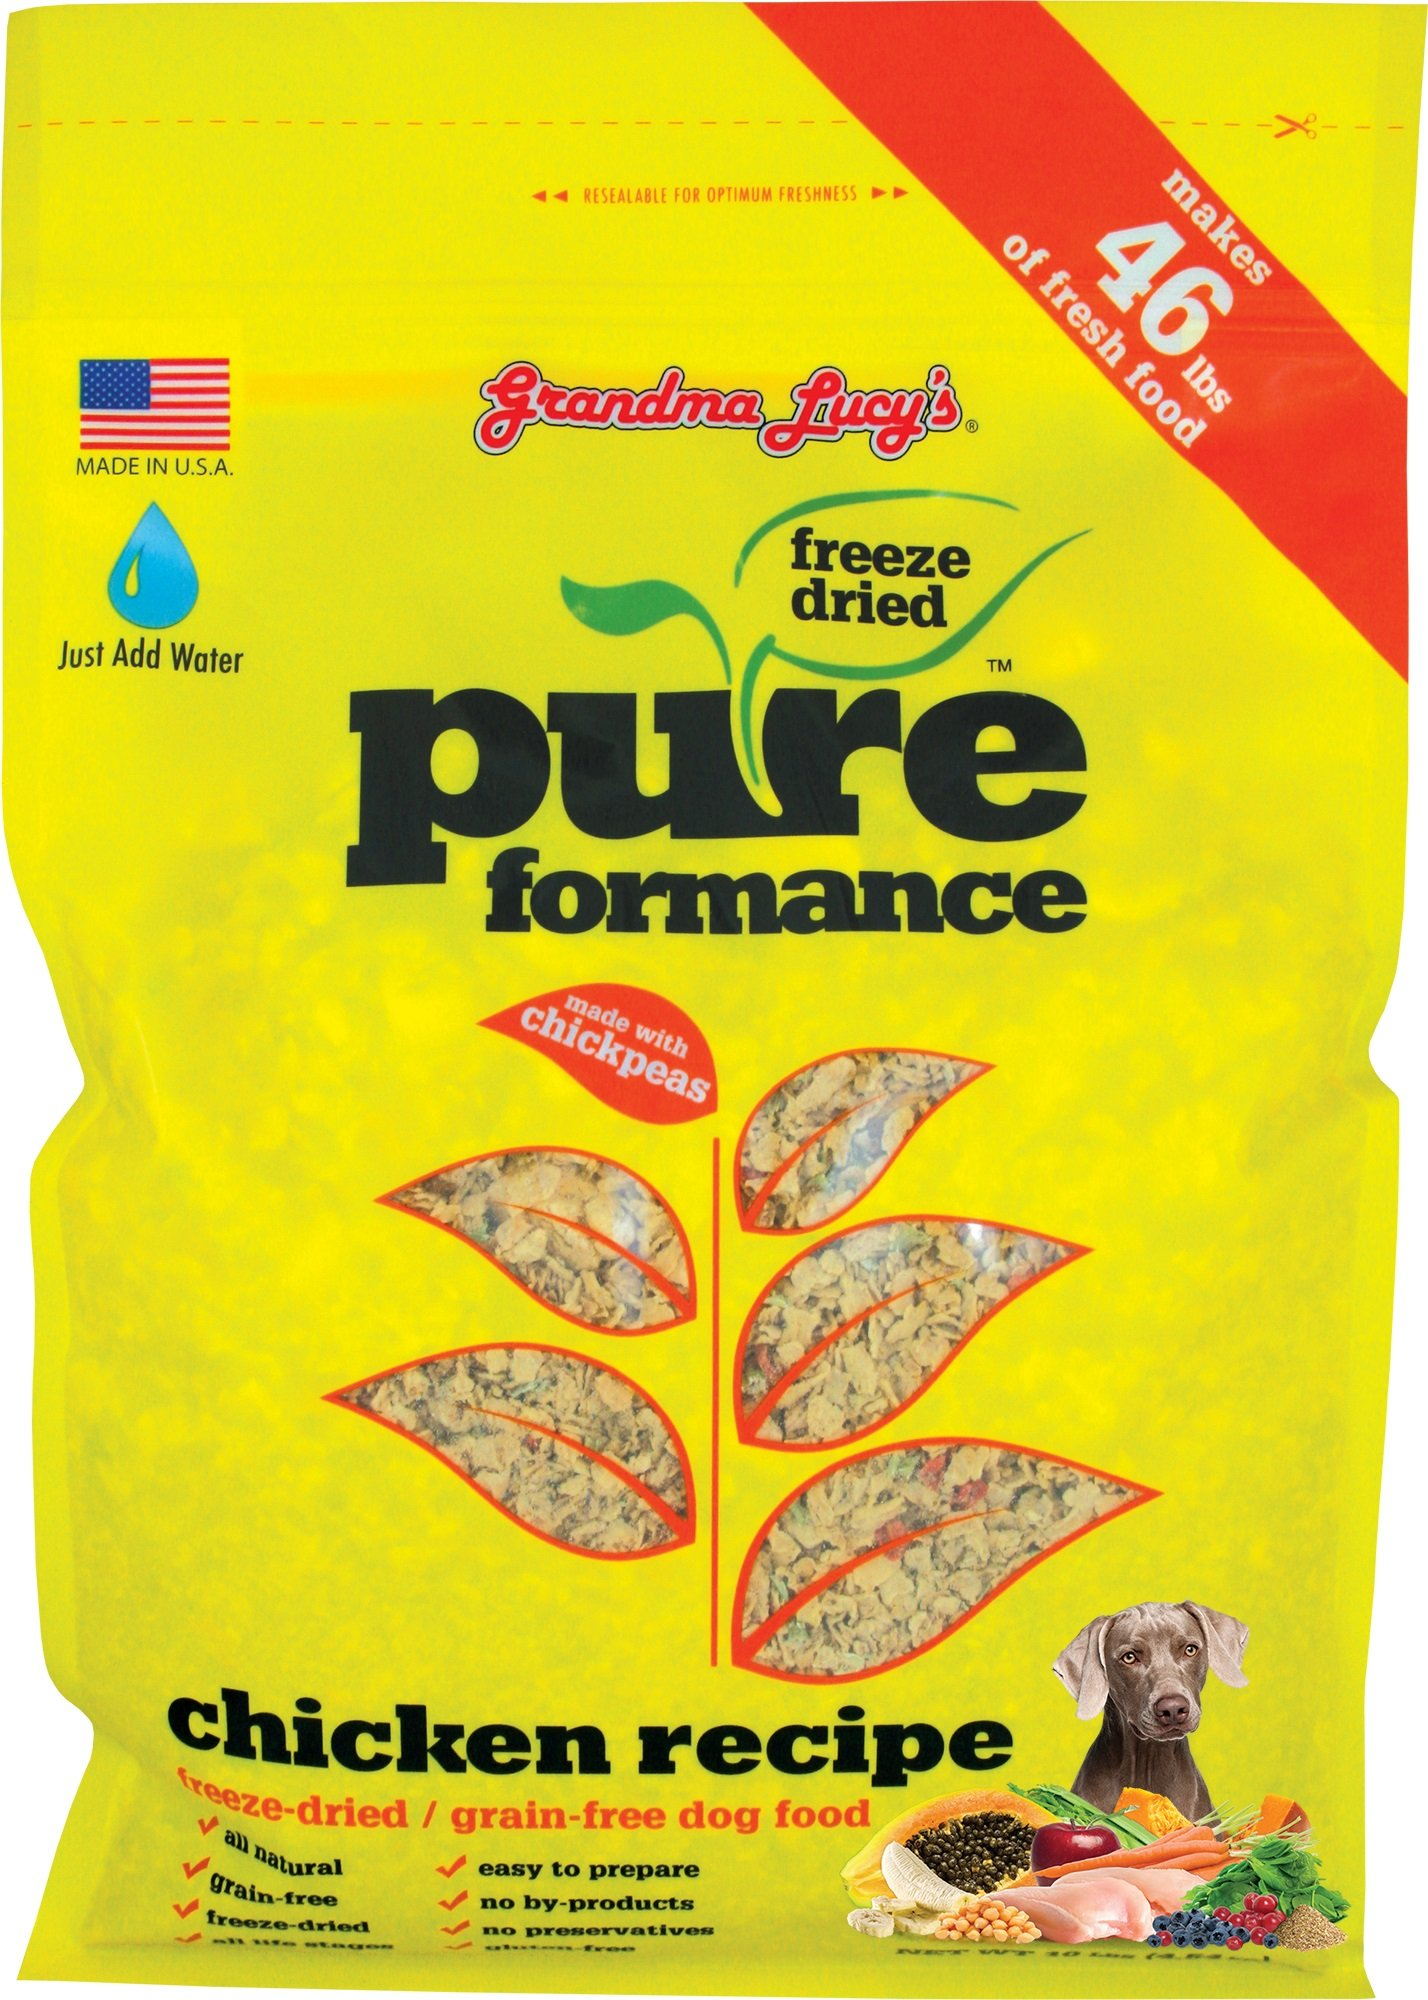 GRANDMA LUCY'S 844212 Pureformance Grain Free Chicken Food for Dogs, 10-Pound by Grandma Lucy's (Image #1)